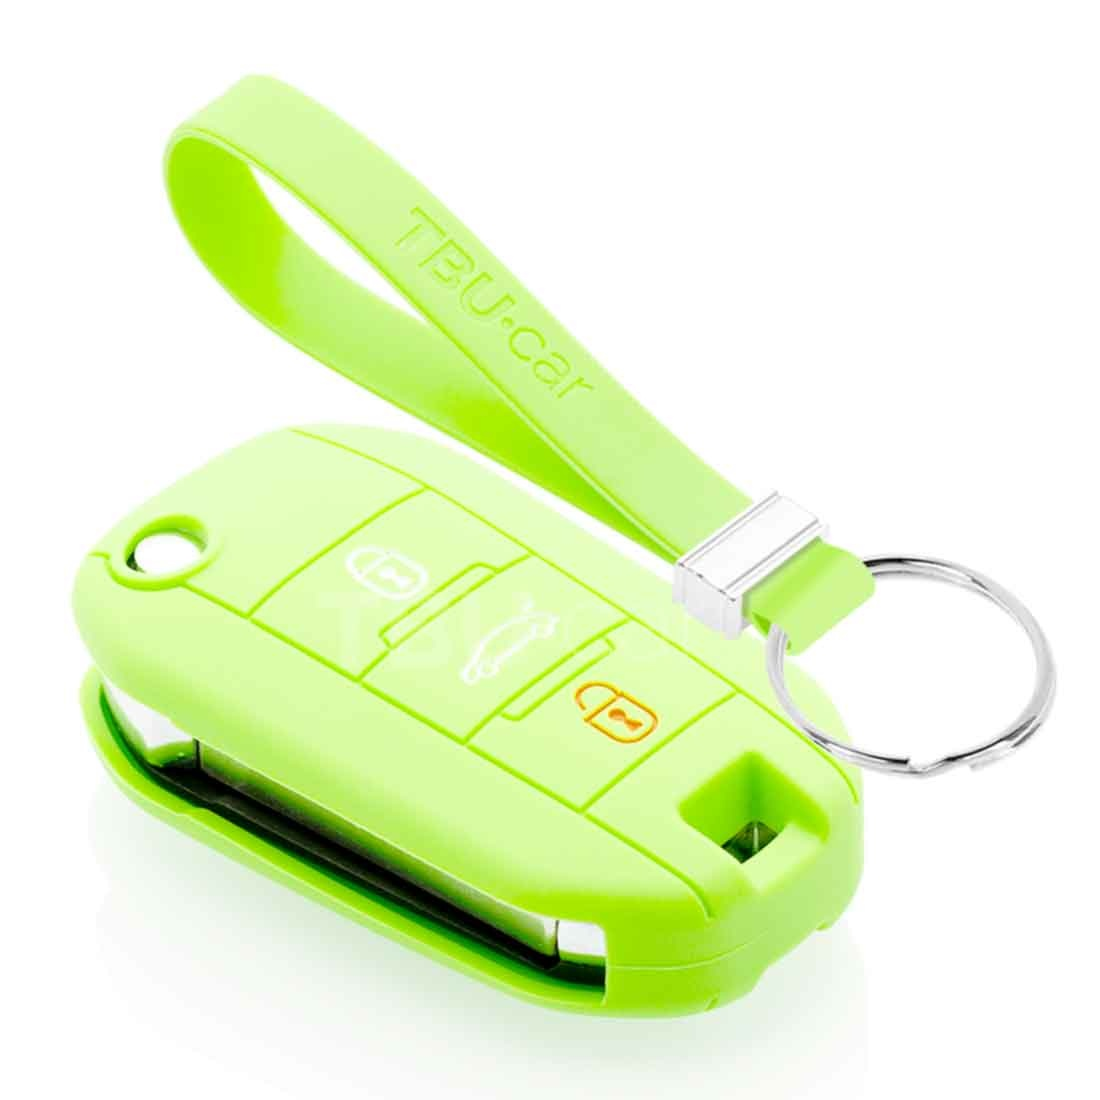 TBU car TBU car Car key cover compatible with Citroën - Silicone Protective Remote Key Shell - FOB Case Cover - Glow in the Dark